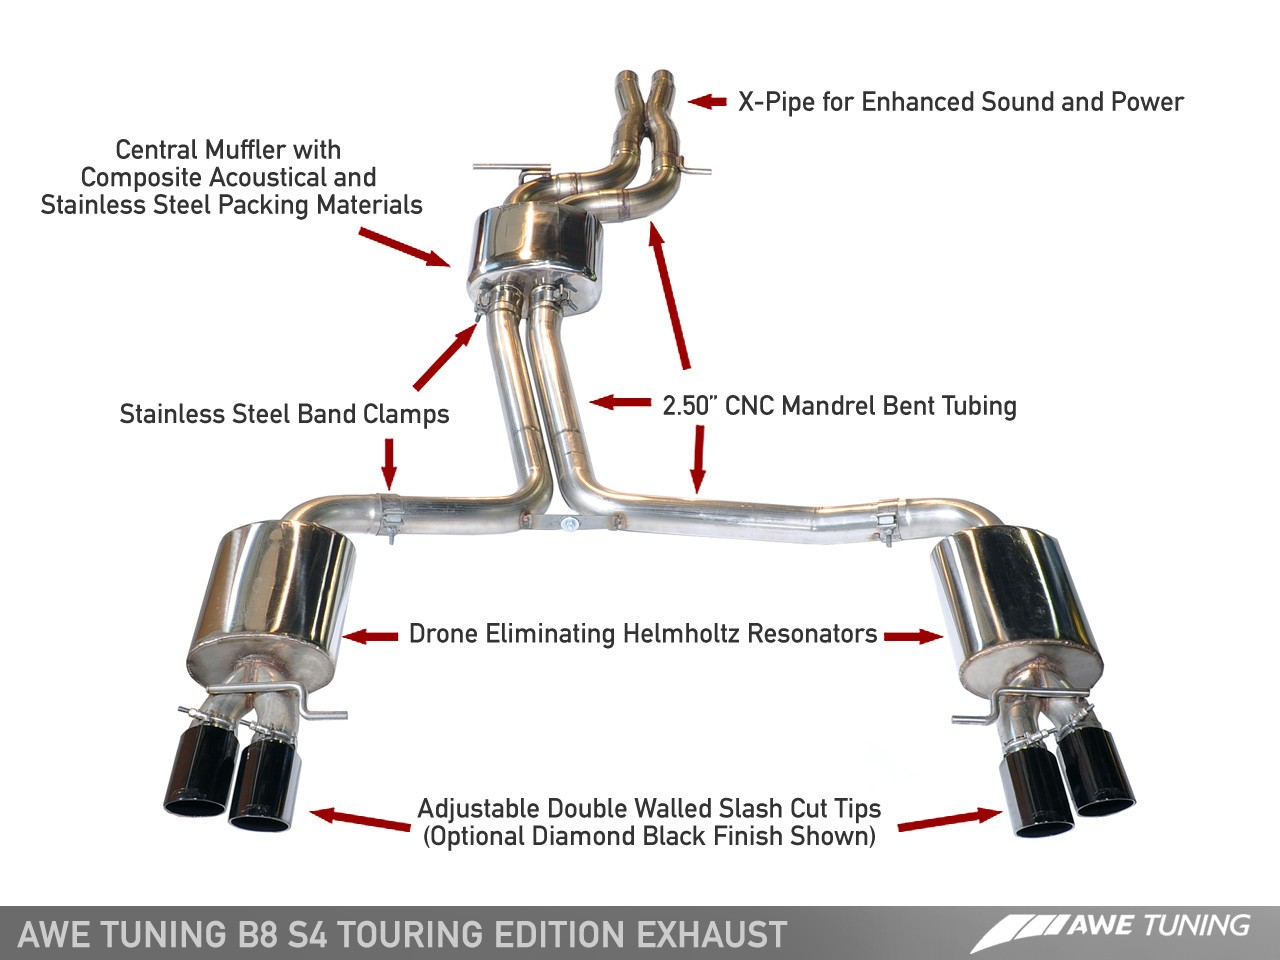 AWE Tuning Touring Edition Cat-back Exhaust - 90mm Tips (10-16 S4) - Overview